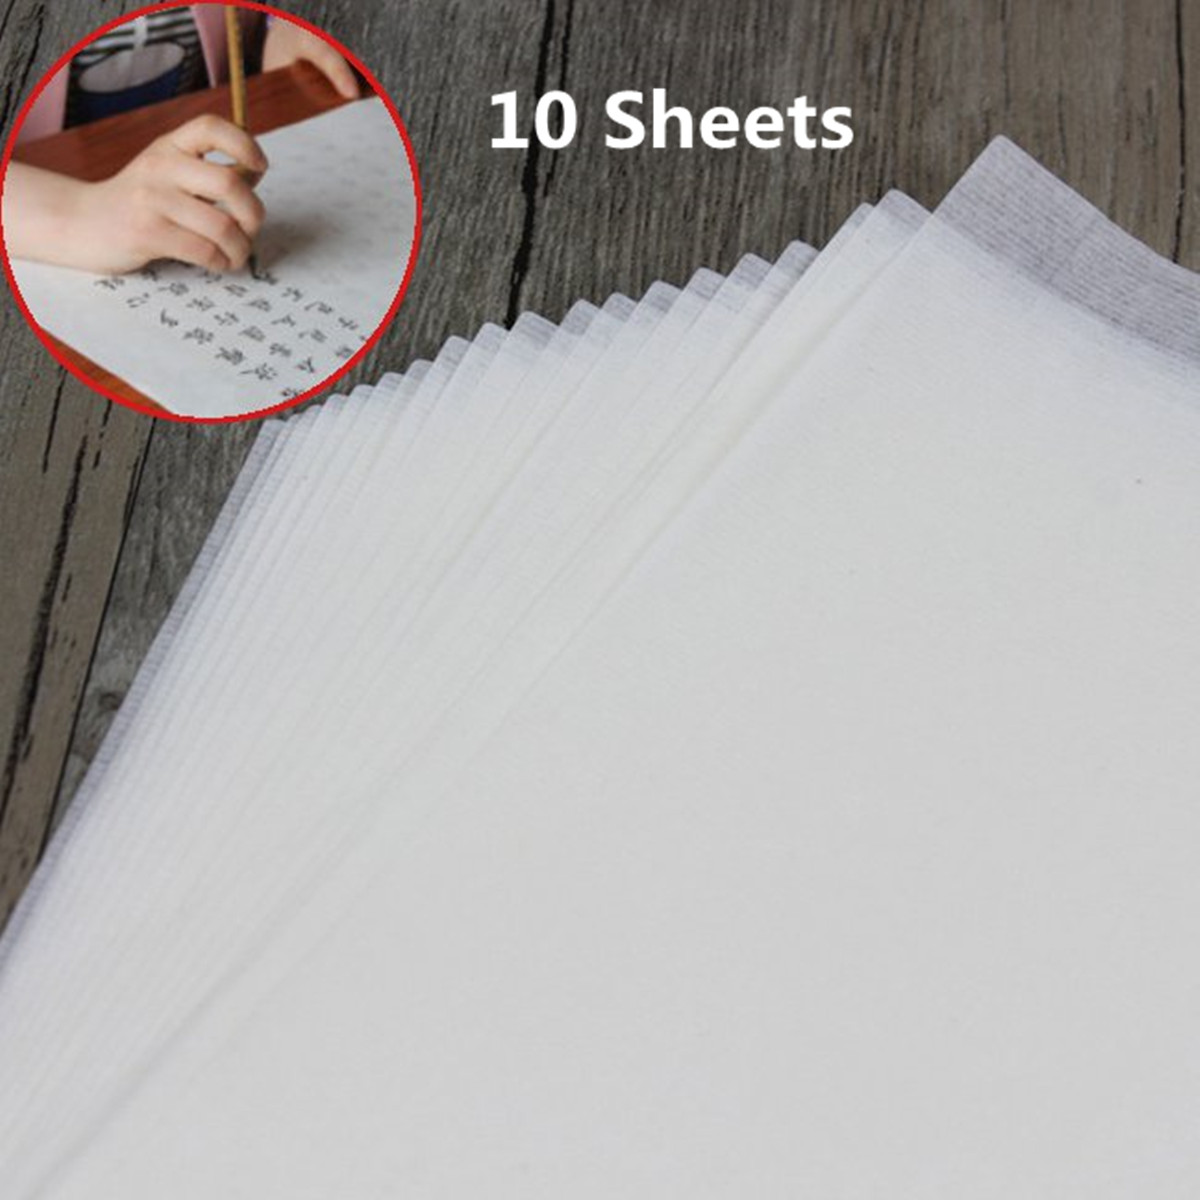 10 Sheets Chinese Calligraphy Painting Rice Xuan Paper White Painting Paper Printing Rice Paper Calligraphy Supplies 32x22cm